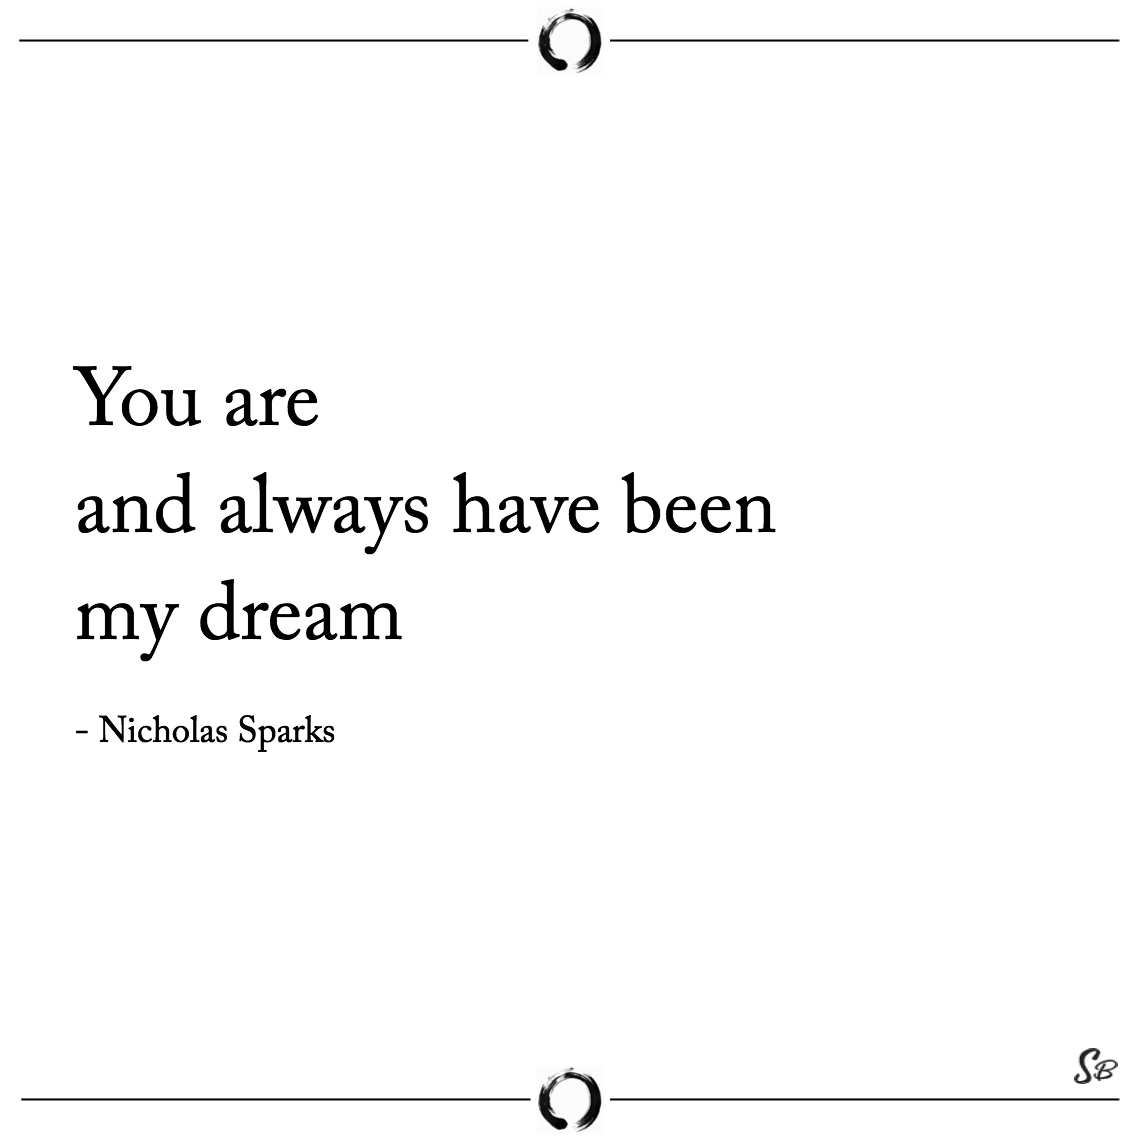 You are and always have been my dream nicholas sparks